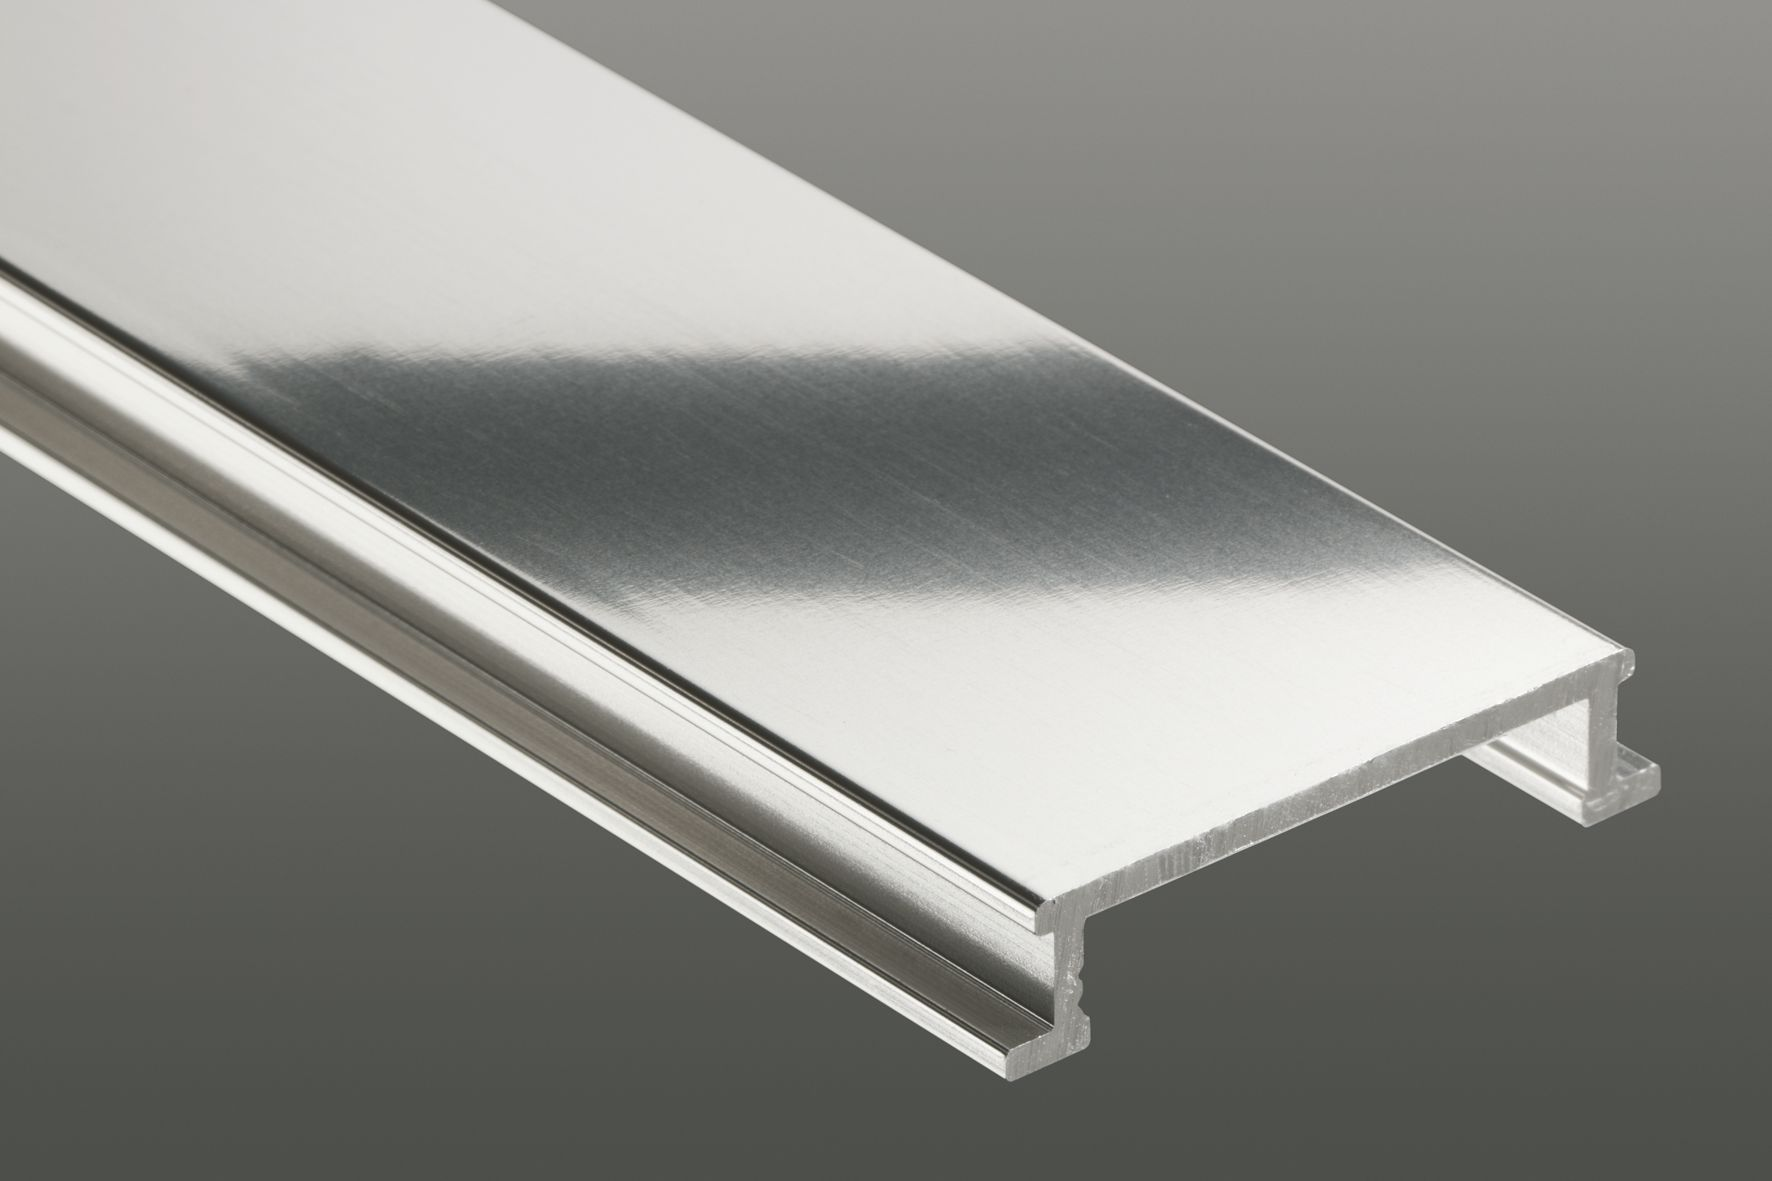 chic schluter strip Jolly ACG polished chrome anodised aluminum